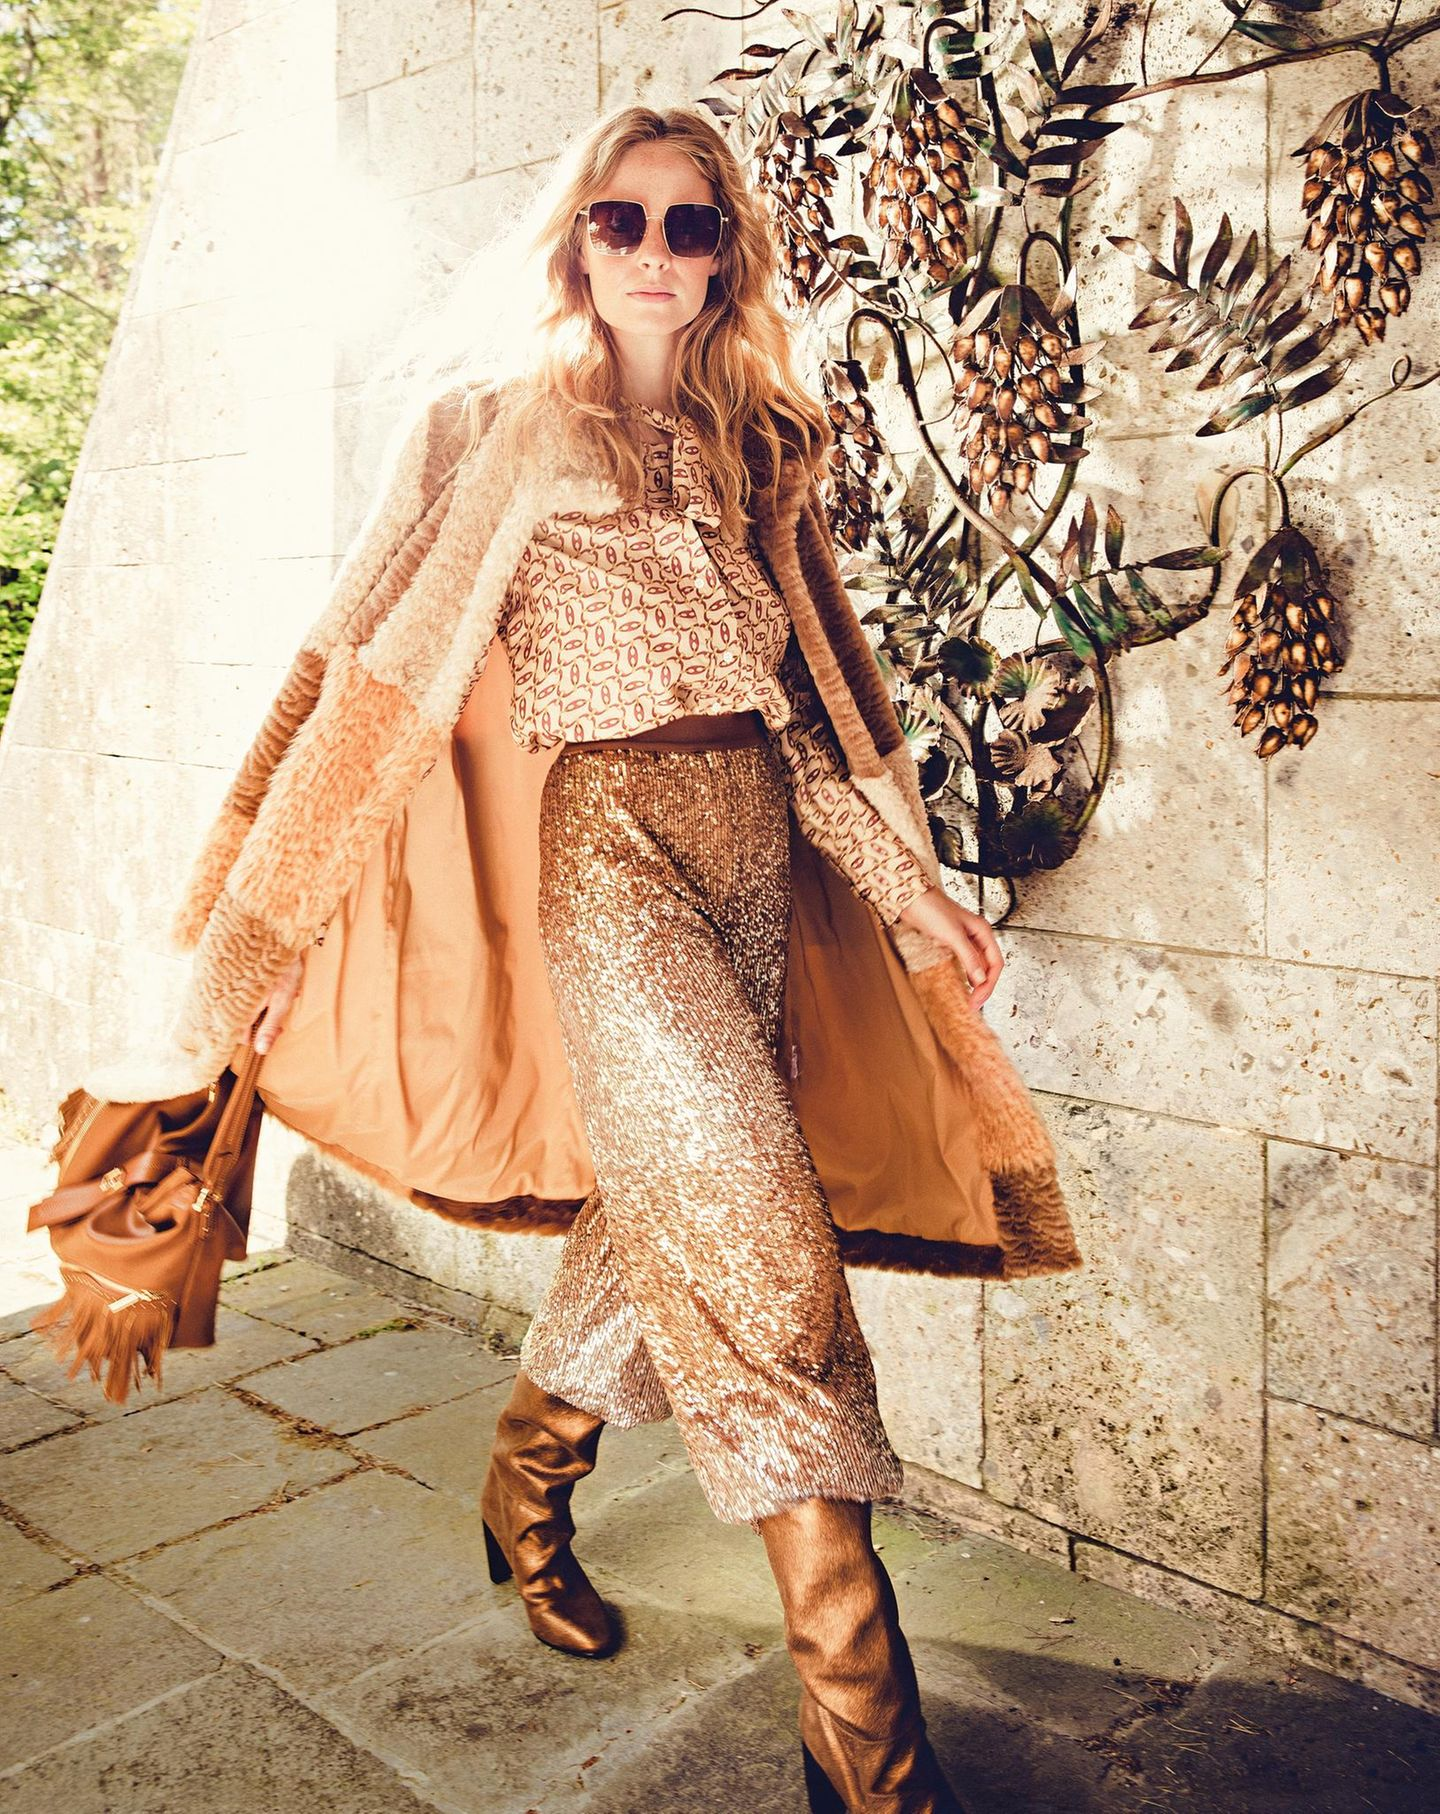 Boho-Chic: Goldenes Outfit